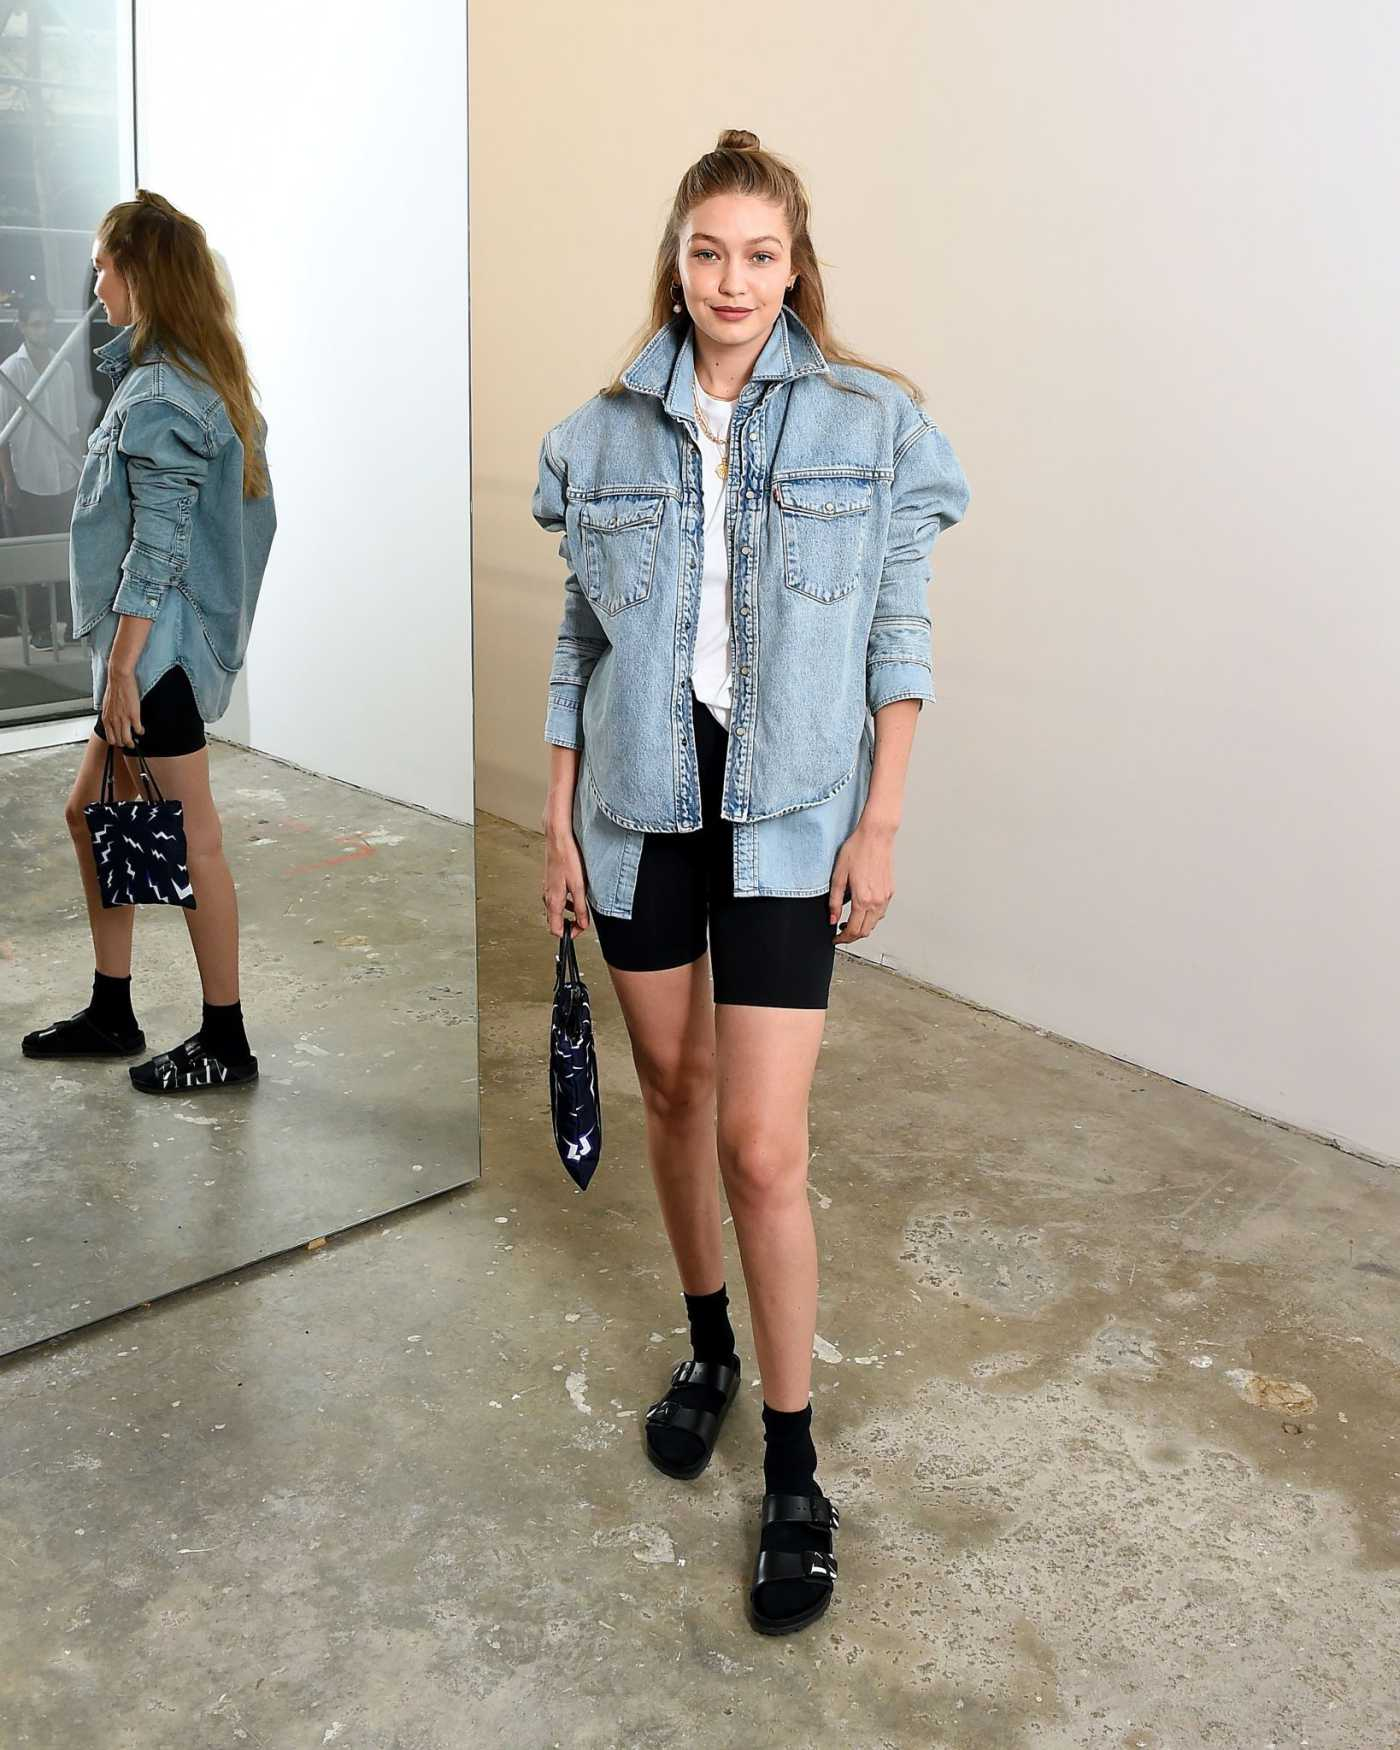 Gigi Hadid Attends WARDROBE.NYC Launch of Release 04 DENIM and Levi's Collaboration in NY 07/17/2019